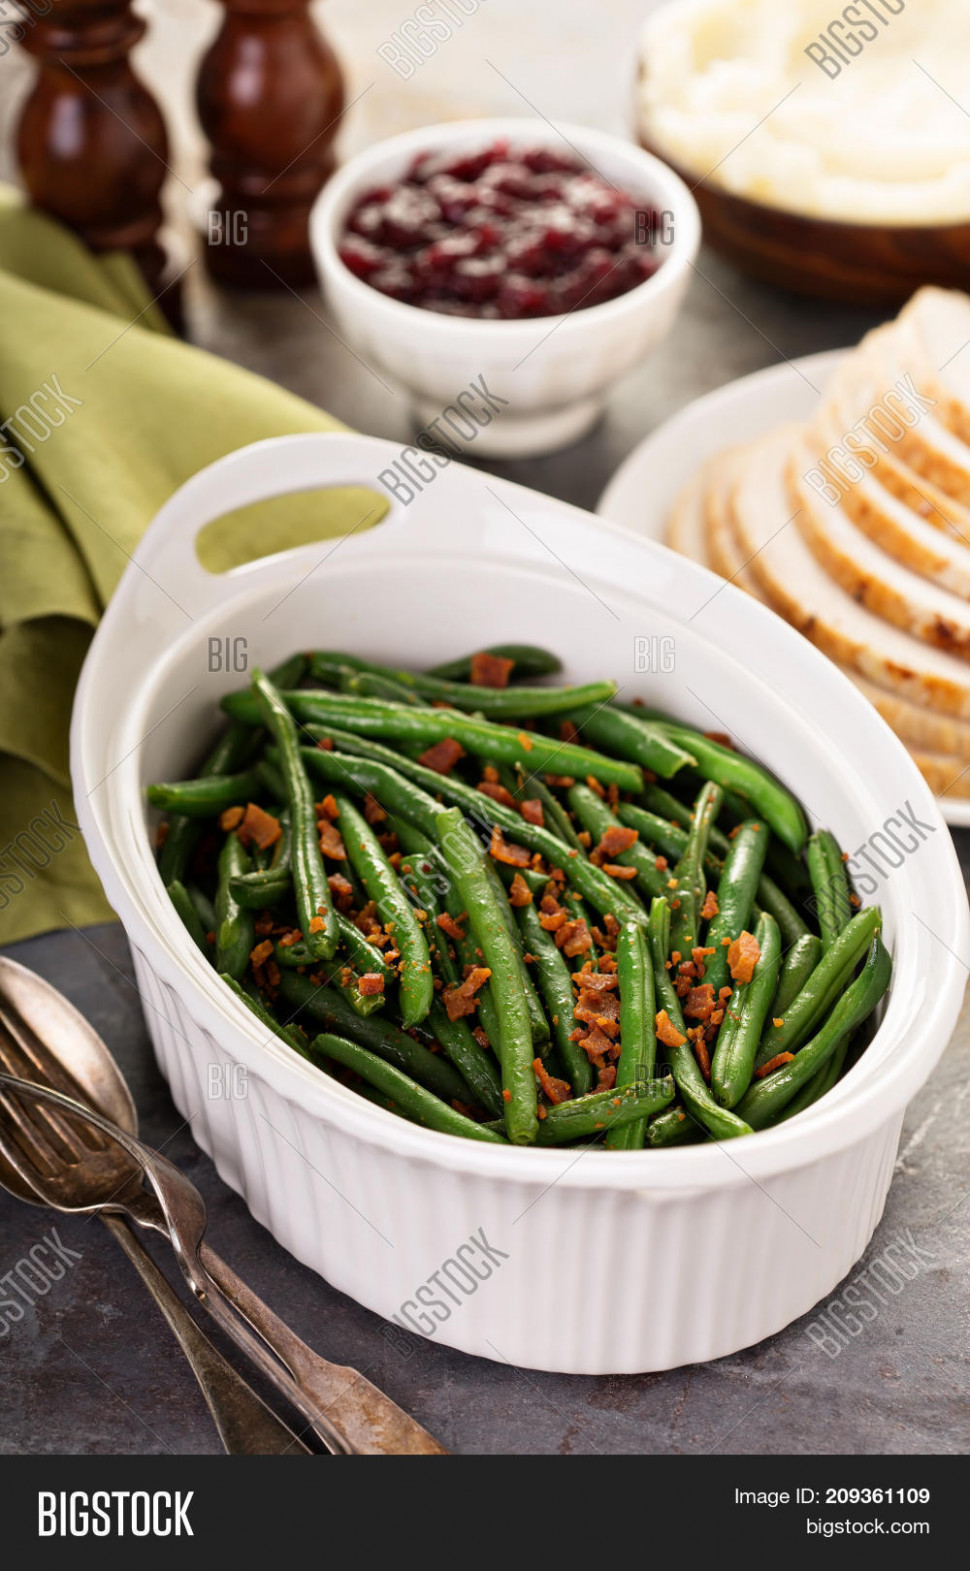 Green Beans Bacon, Image & Photo (Free Trial) | Bigstock - recipes christmas dinner side dish